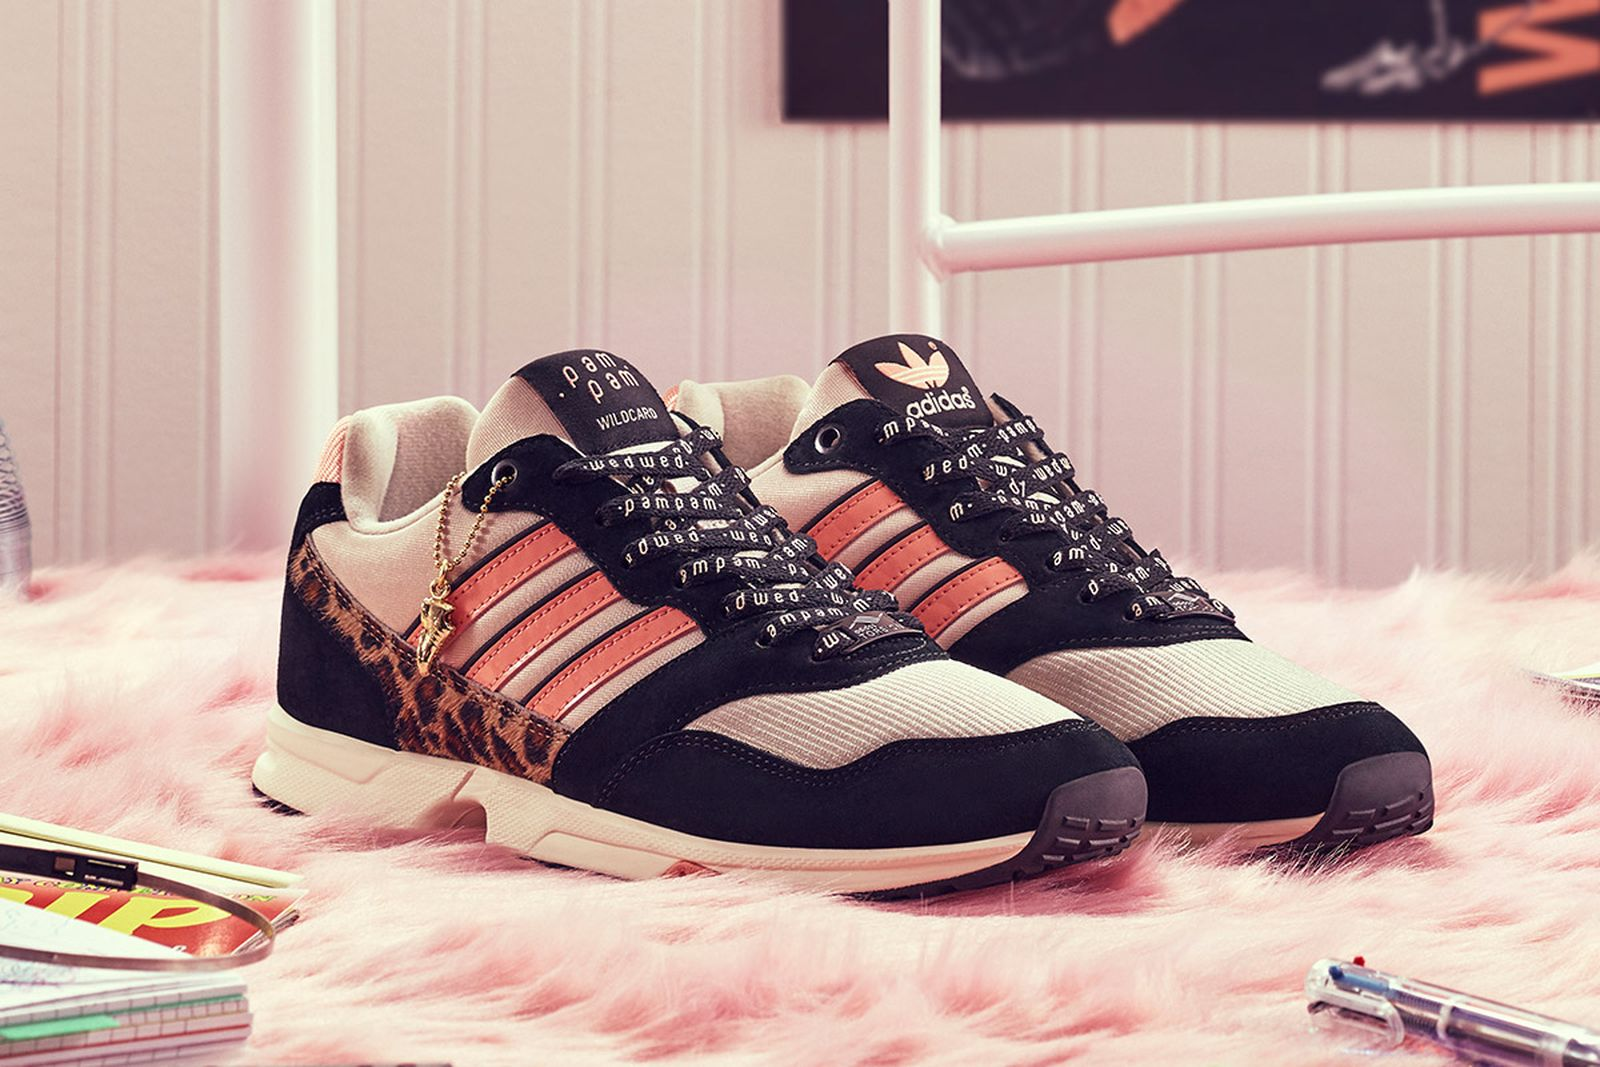 pam-pam-adidas-zx-1000-release-date-price-04